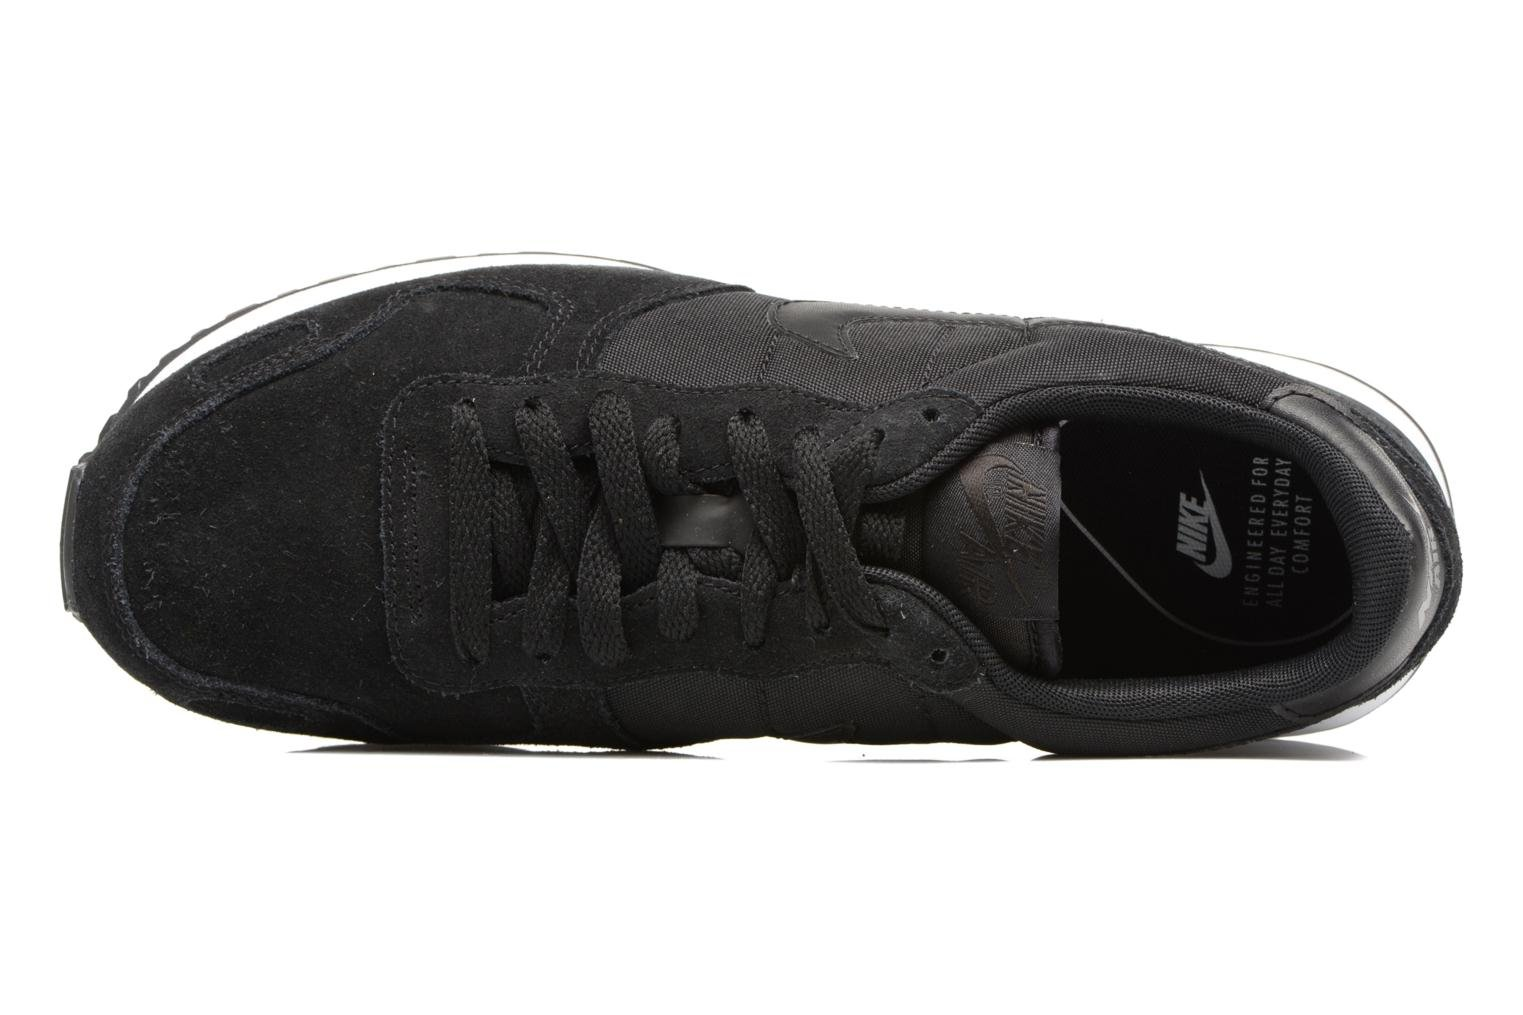 Nike Air Vrtx Ltr Black/black-White